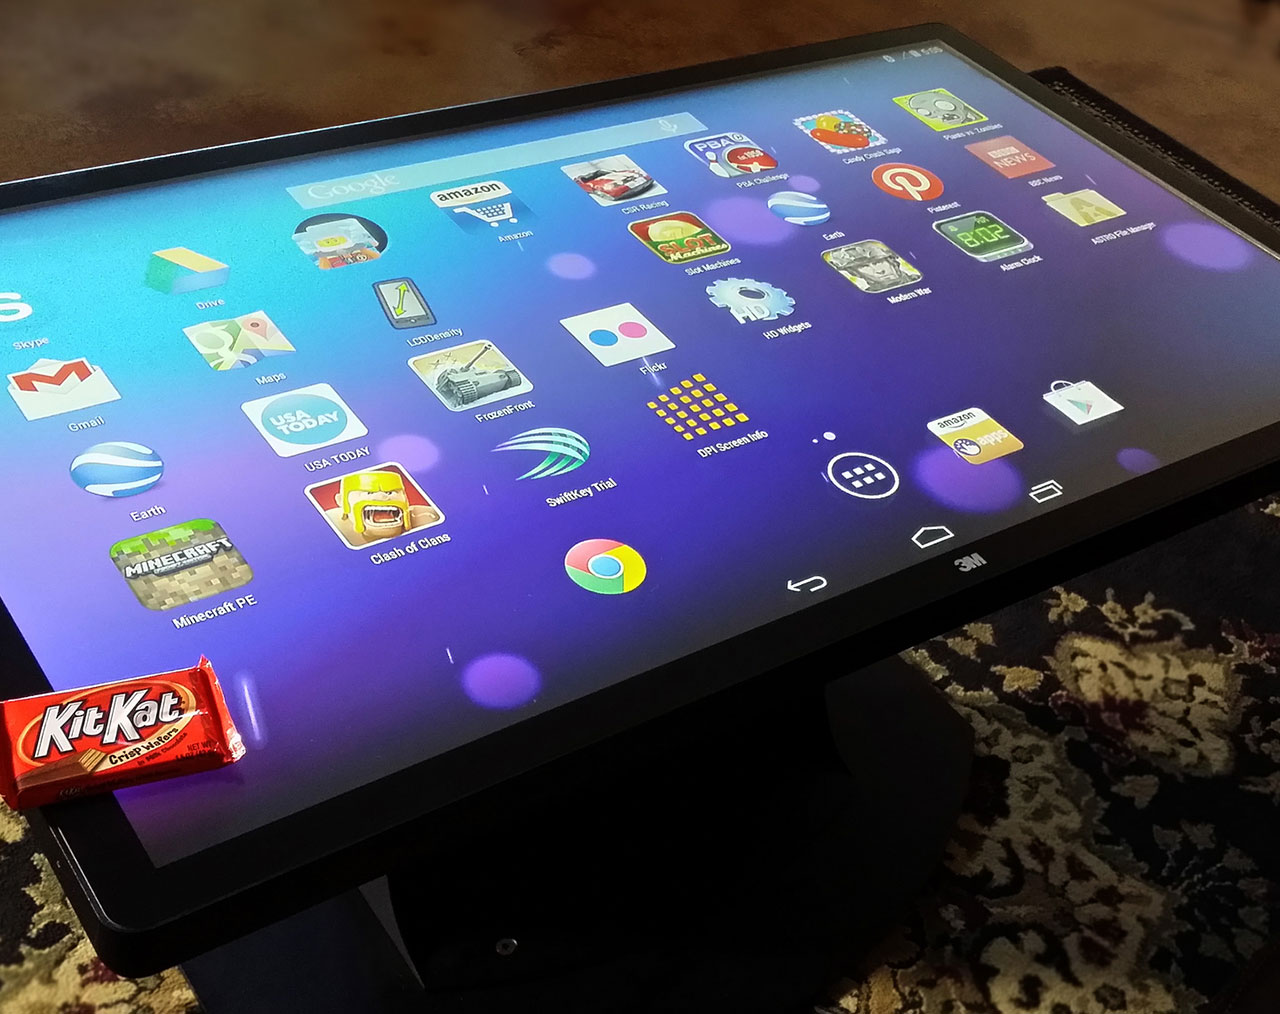 Sweet Deal Android KitKat OS On An Ideum Multitouch Coffee Table - Multitouch coffee table